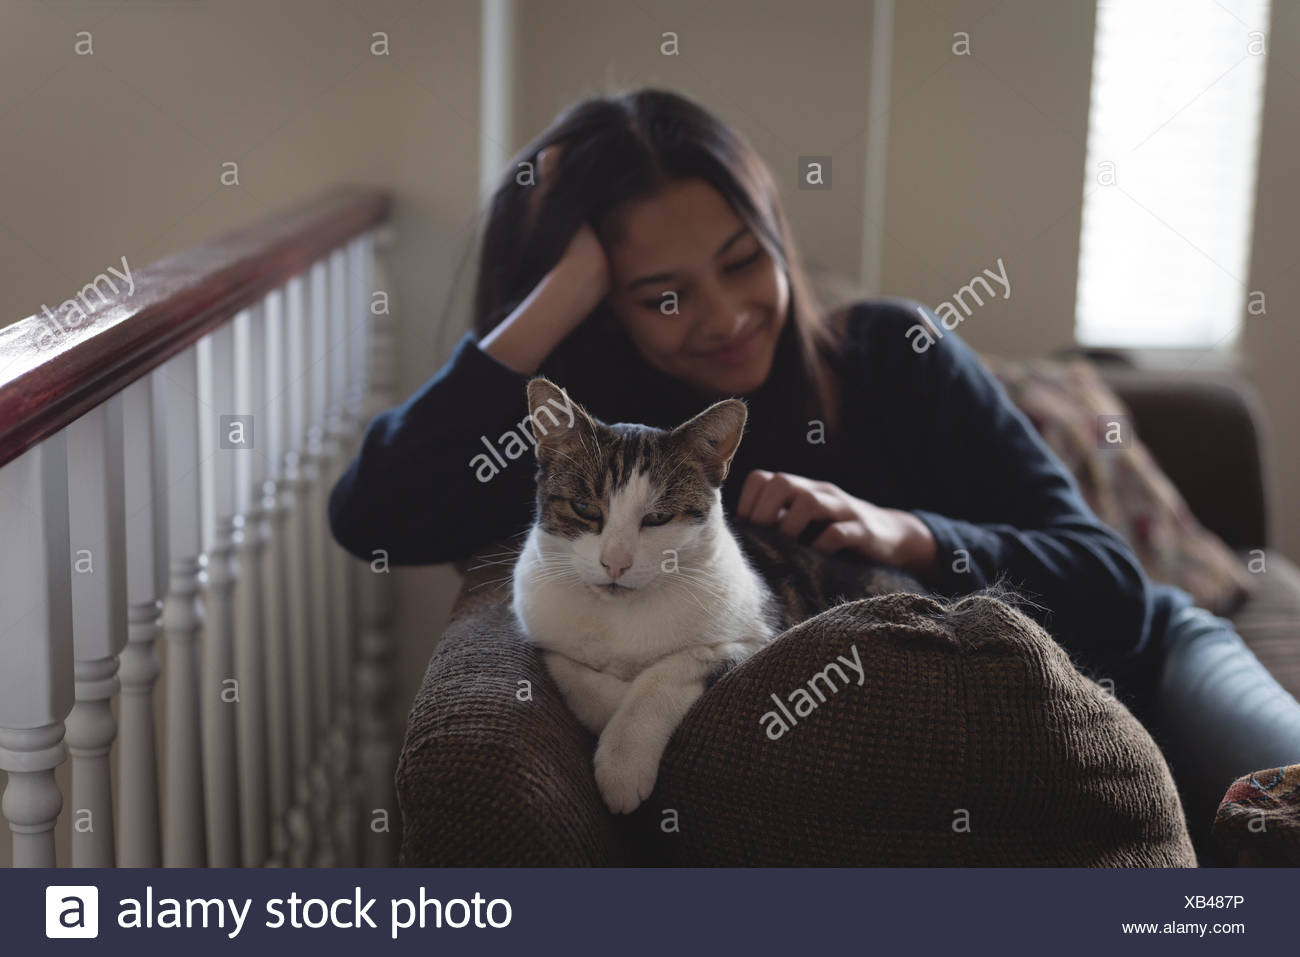 Teenage girl sitting with cat on sofa in living room - Stock Image